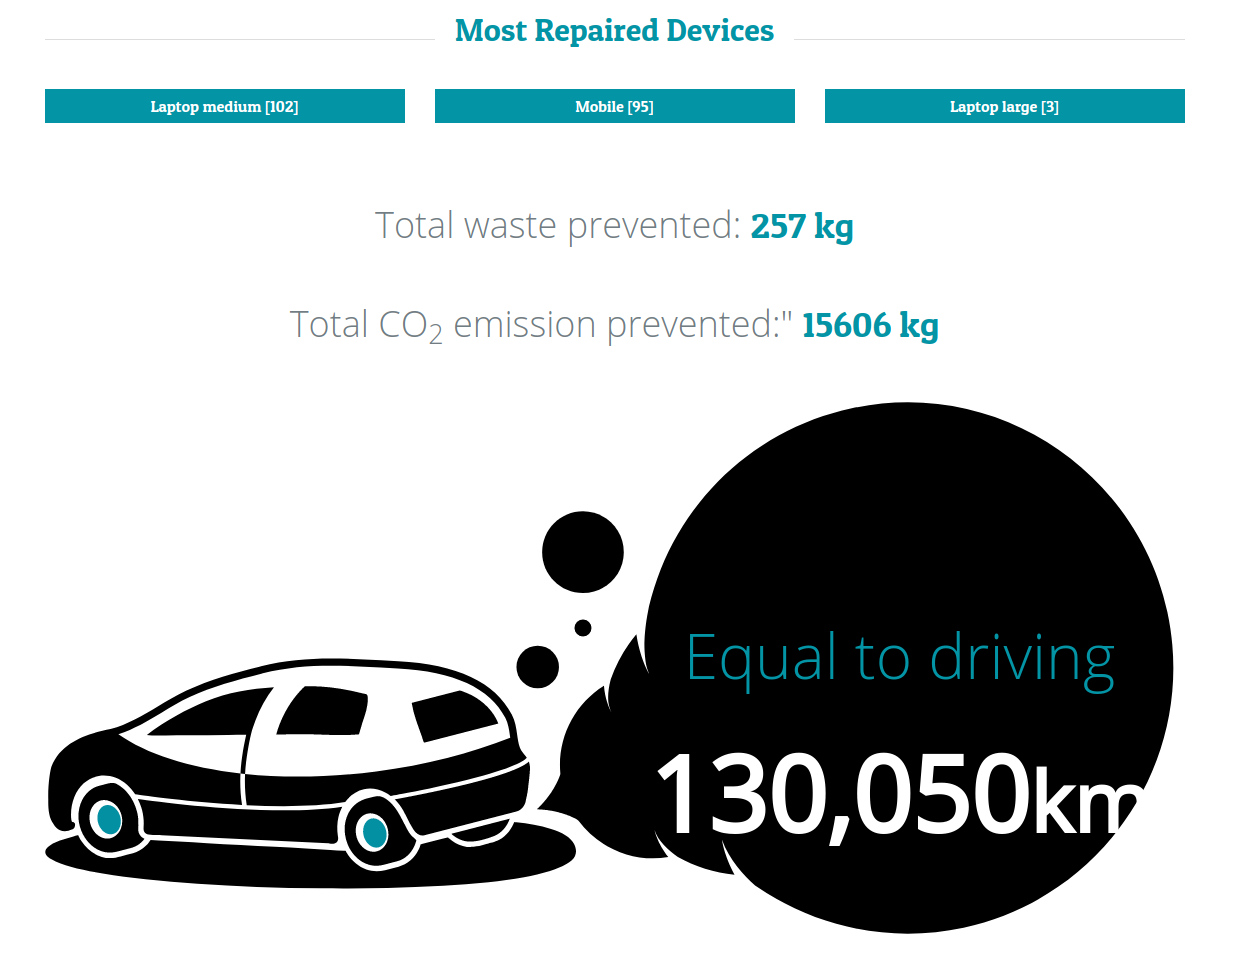 Carbon reduction equivalent of manufacturing 3 new cars.